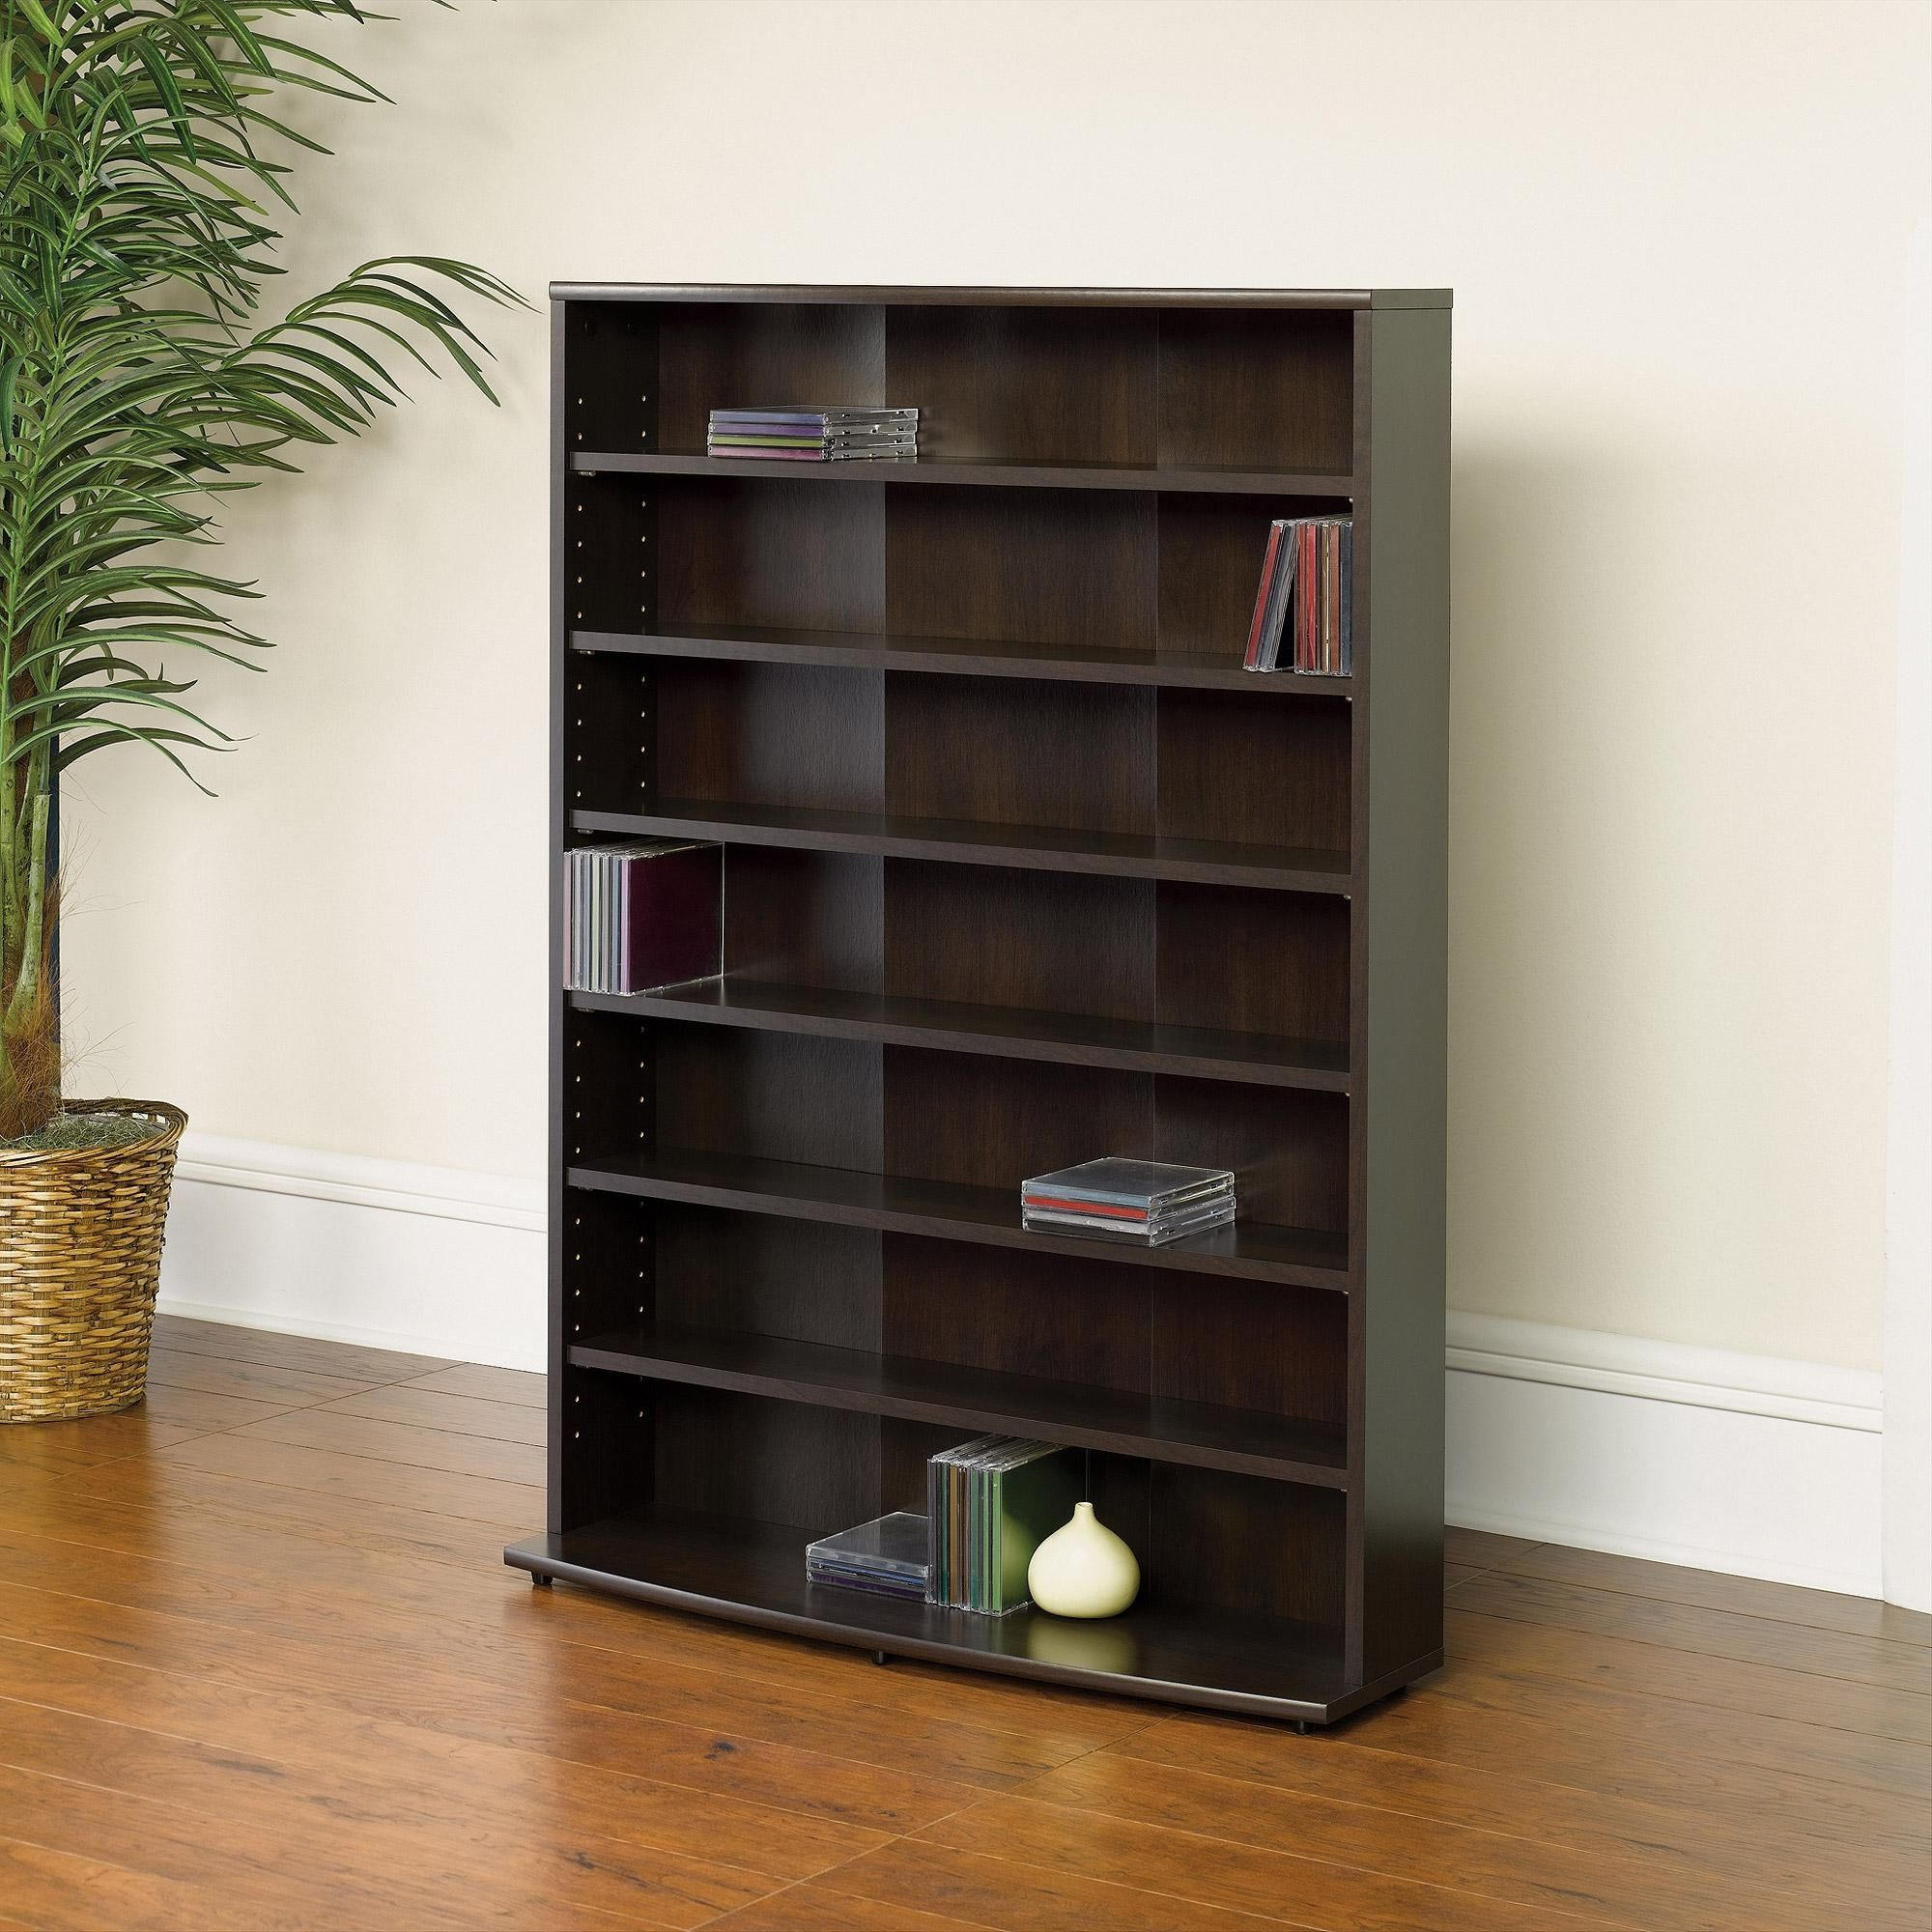 to white shelves bookcases bookcase adapt between collections according tower en your space ikea adjustable gb needs billy